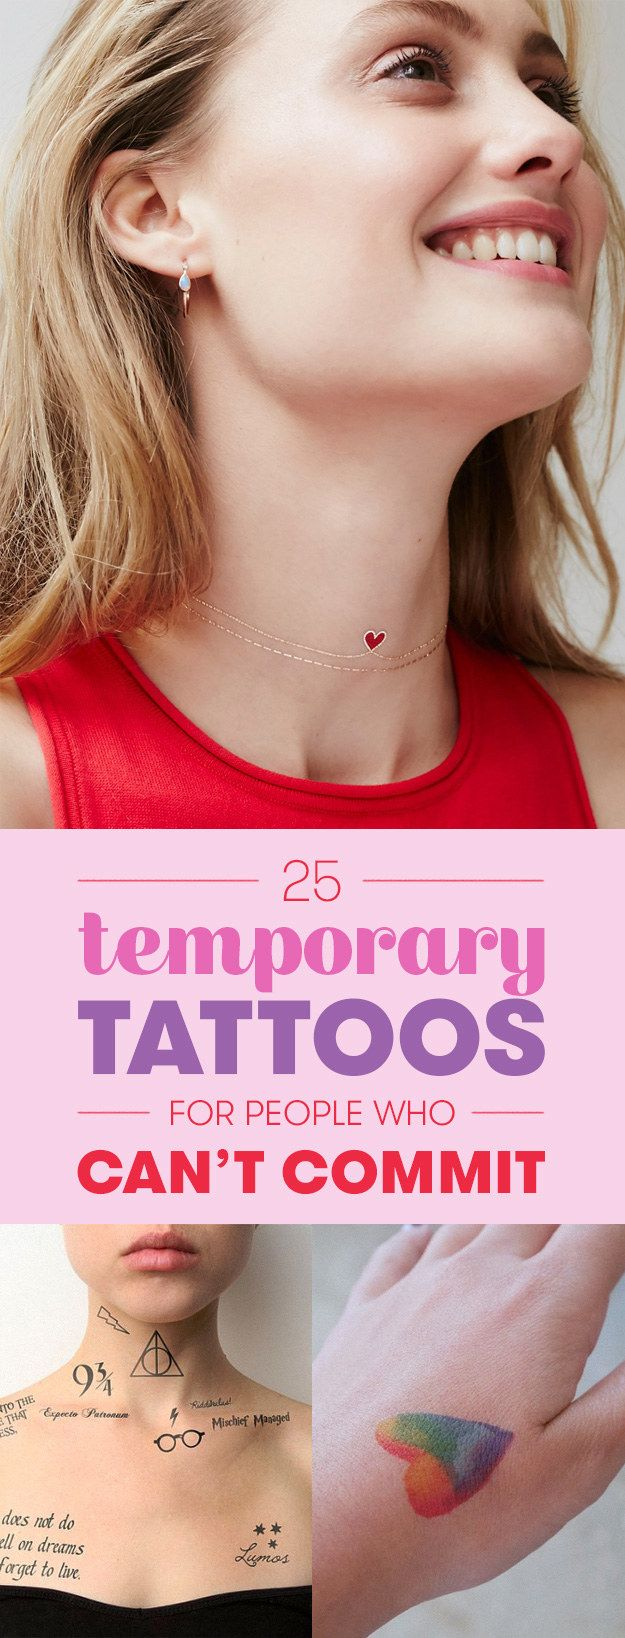 25 Stunning Temporary Tattoos For People Who Can't Commit